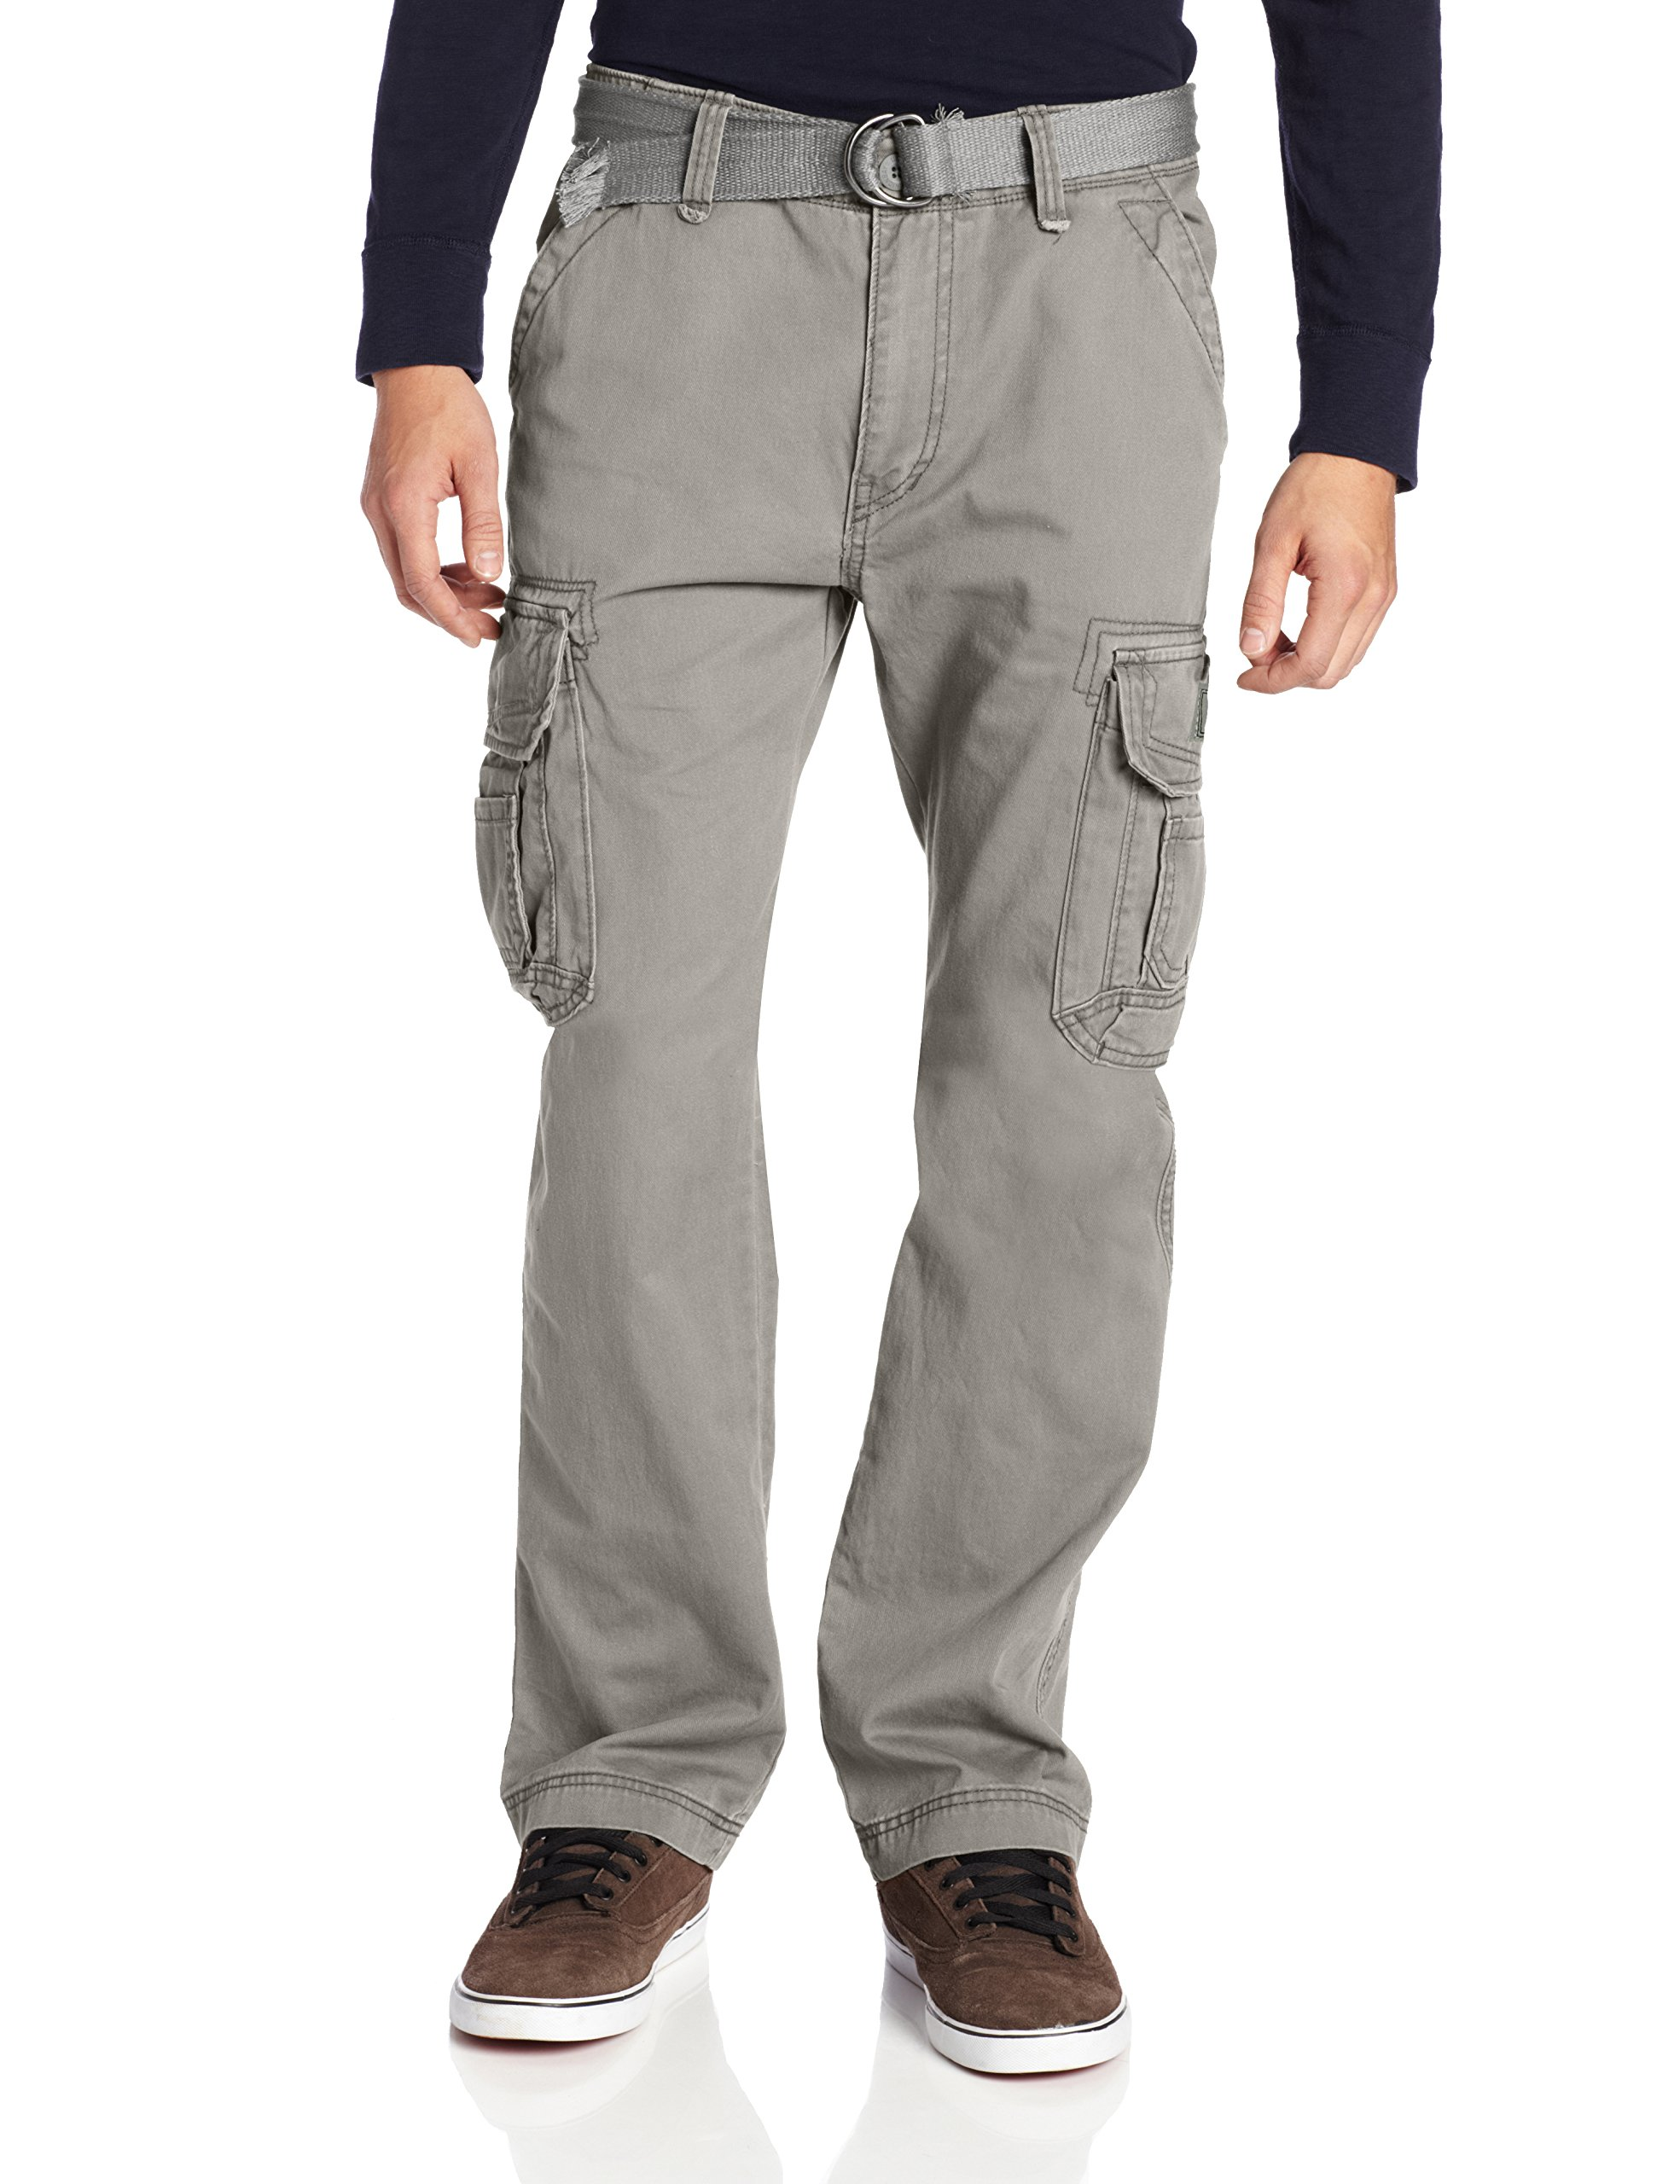 Unionbay Men's Survivor Iv Relaxed Fit Cargo Pant - Reg and Big and Tall Sizes, grey goose, 48x32